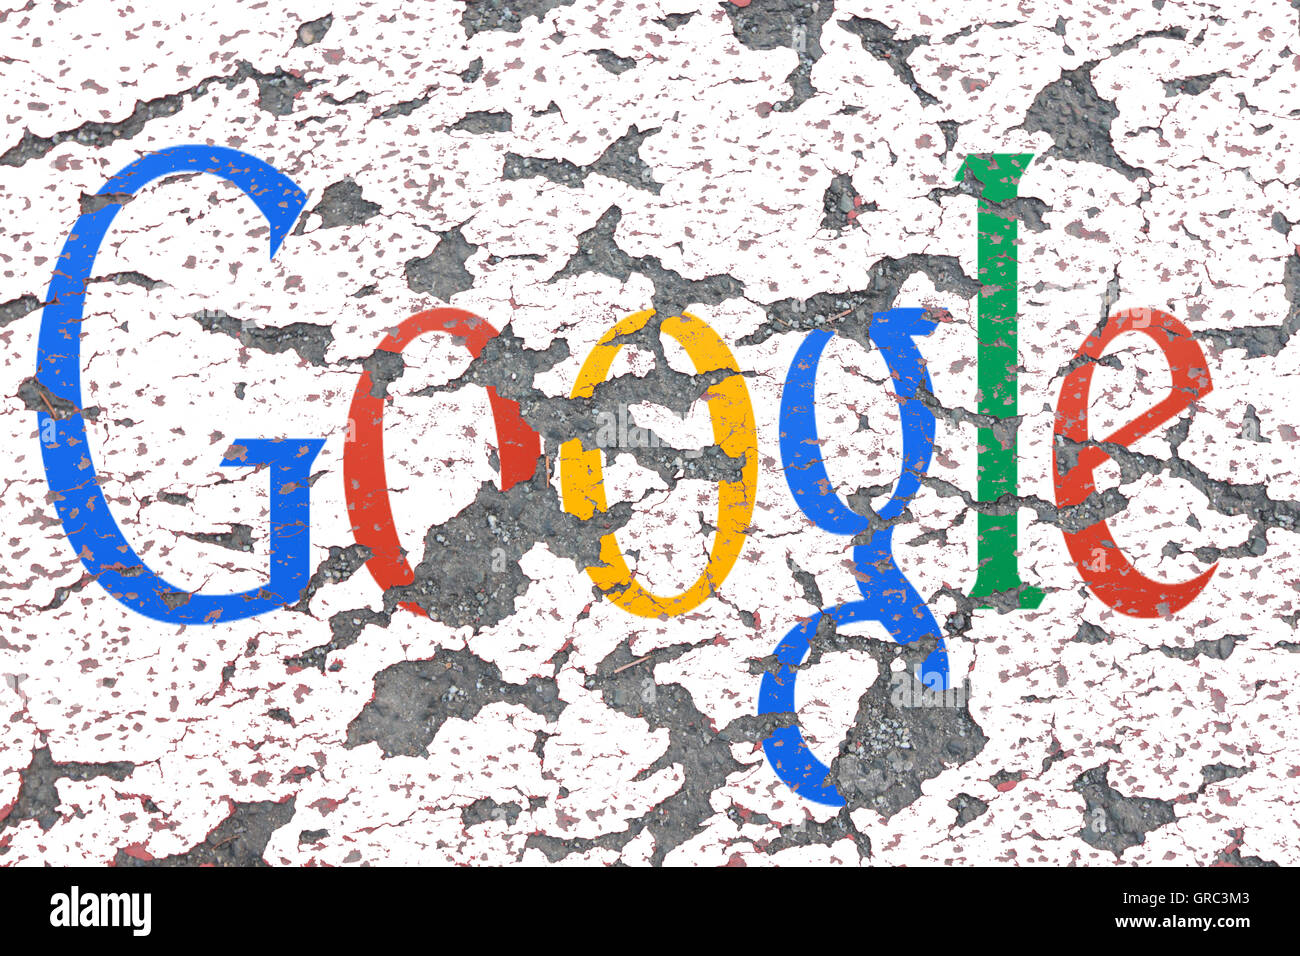 Eroding Google Sign On A Wall - Stock Image